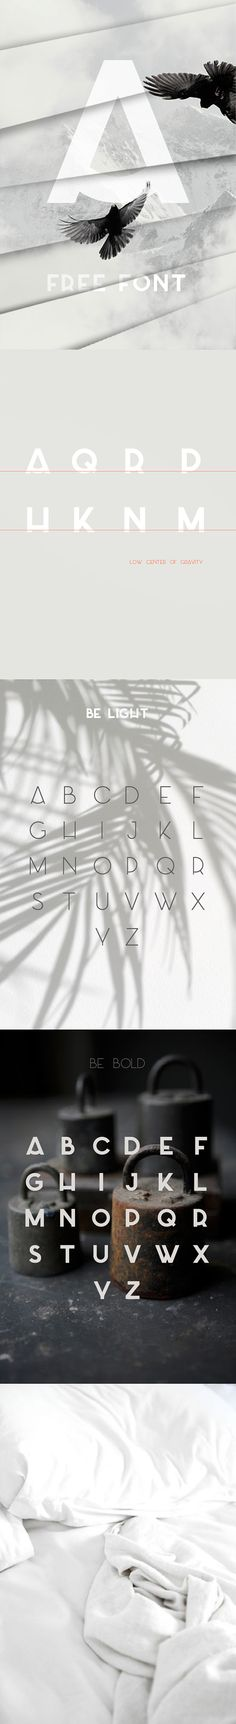 Azedo is a beautiful type that was created by a graphic designer for his own personal logo. He was nice enough to share his finished project with the world. The font comes in two weights, bold and light which is perfect for your own design...